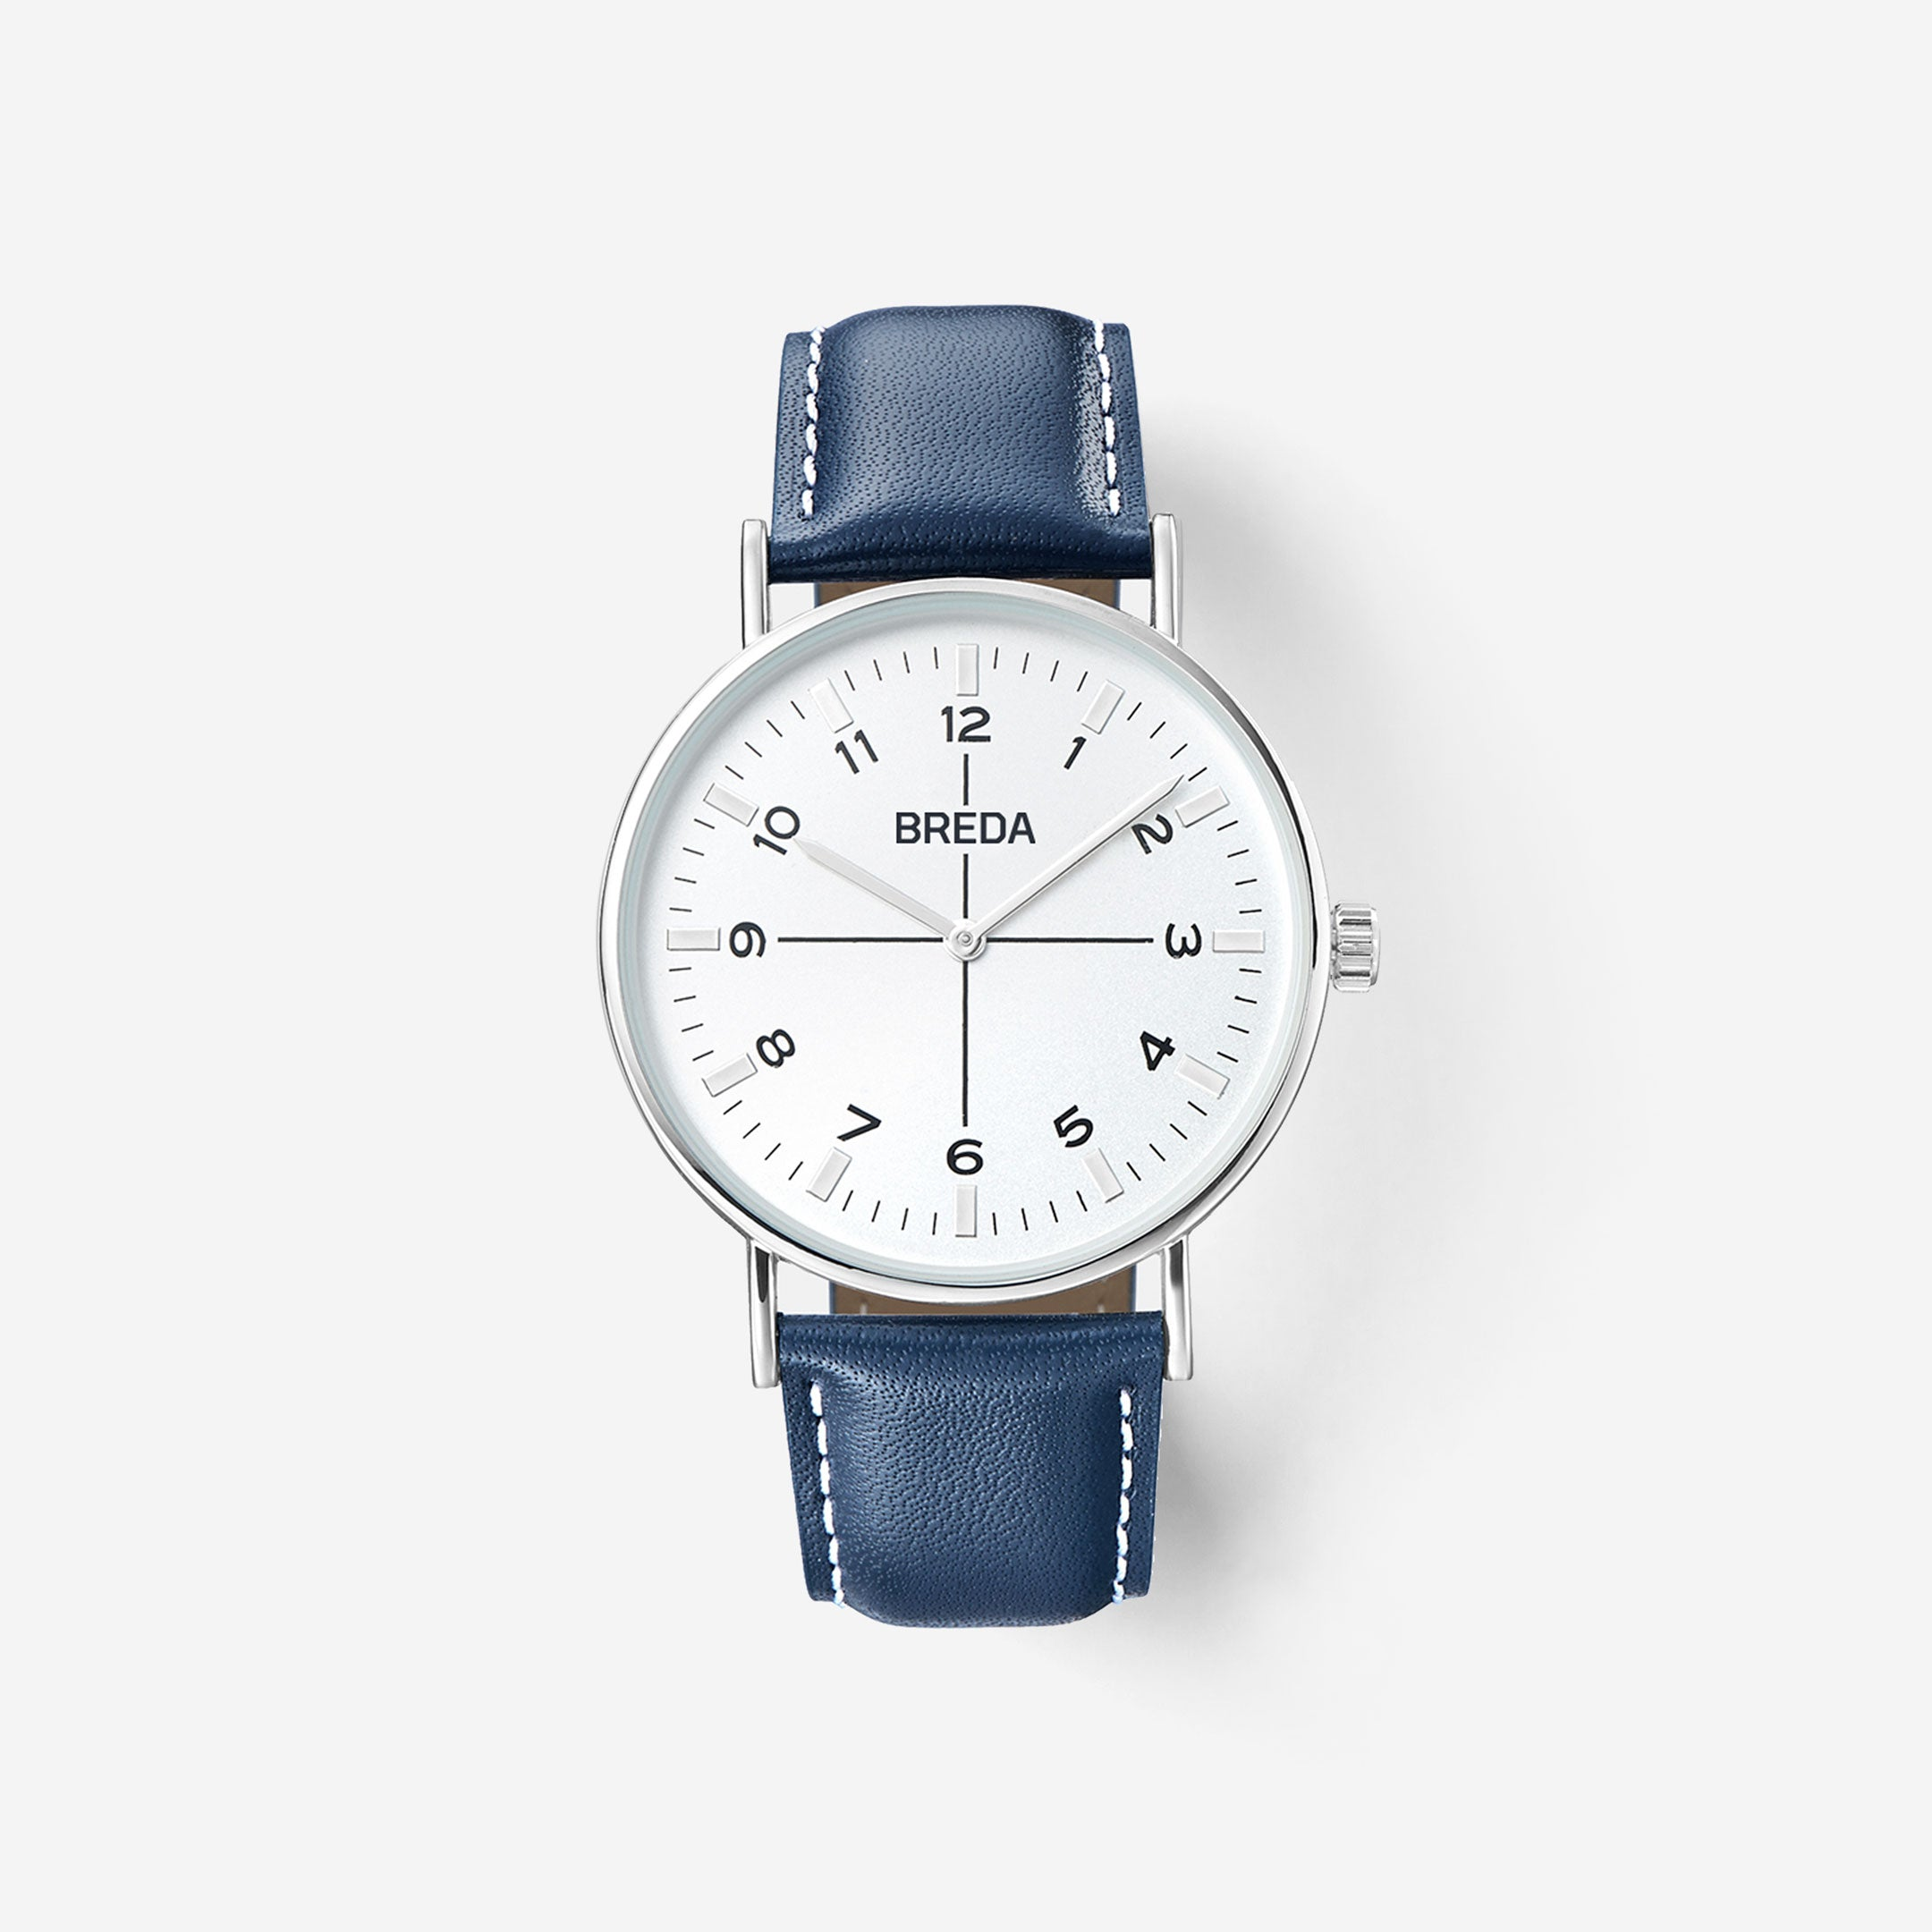 //cdn.shopify.com/s/files/1/0879/6650/products/breda-belmont-1646c-silver-navy-watch-front_1024x1024.jpg?v=1490805073